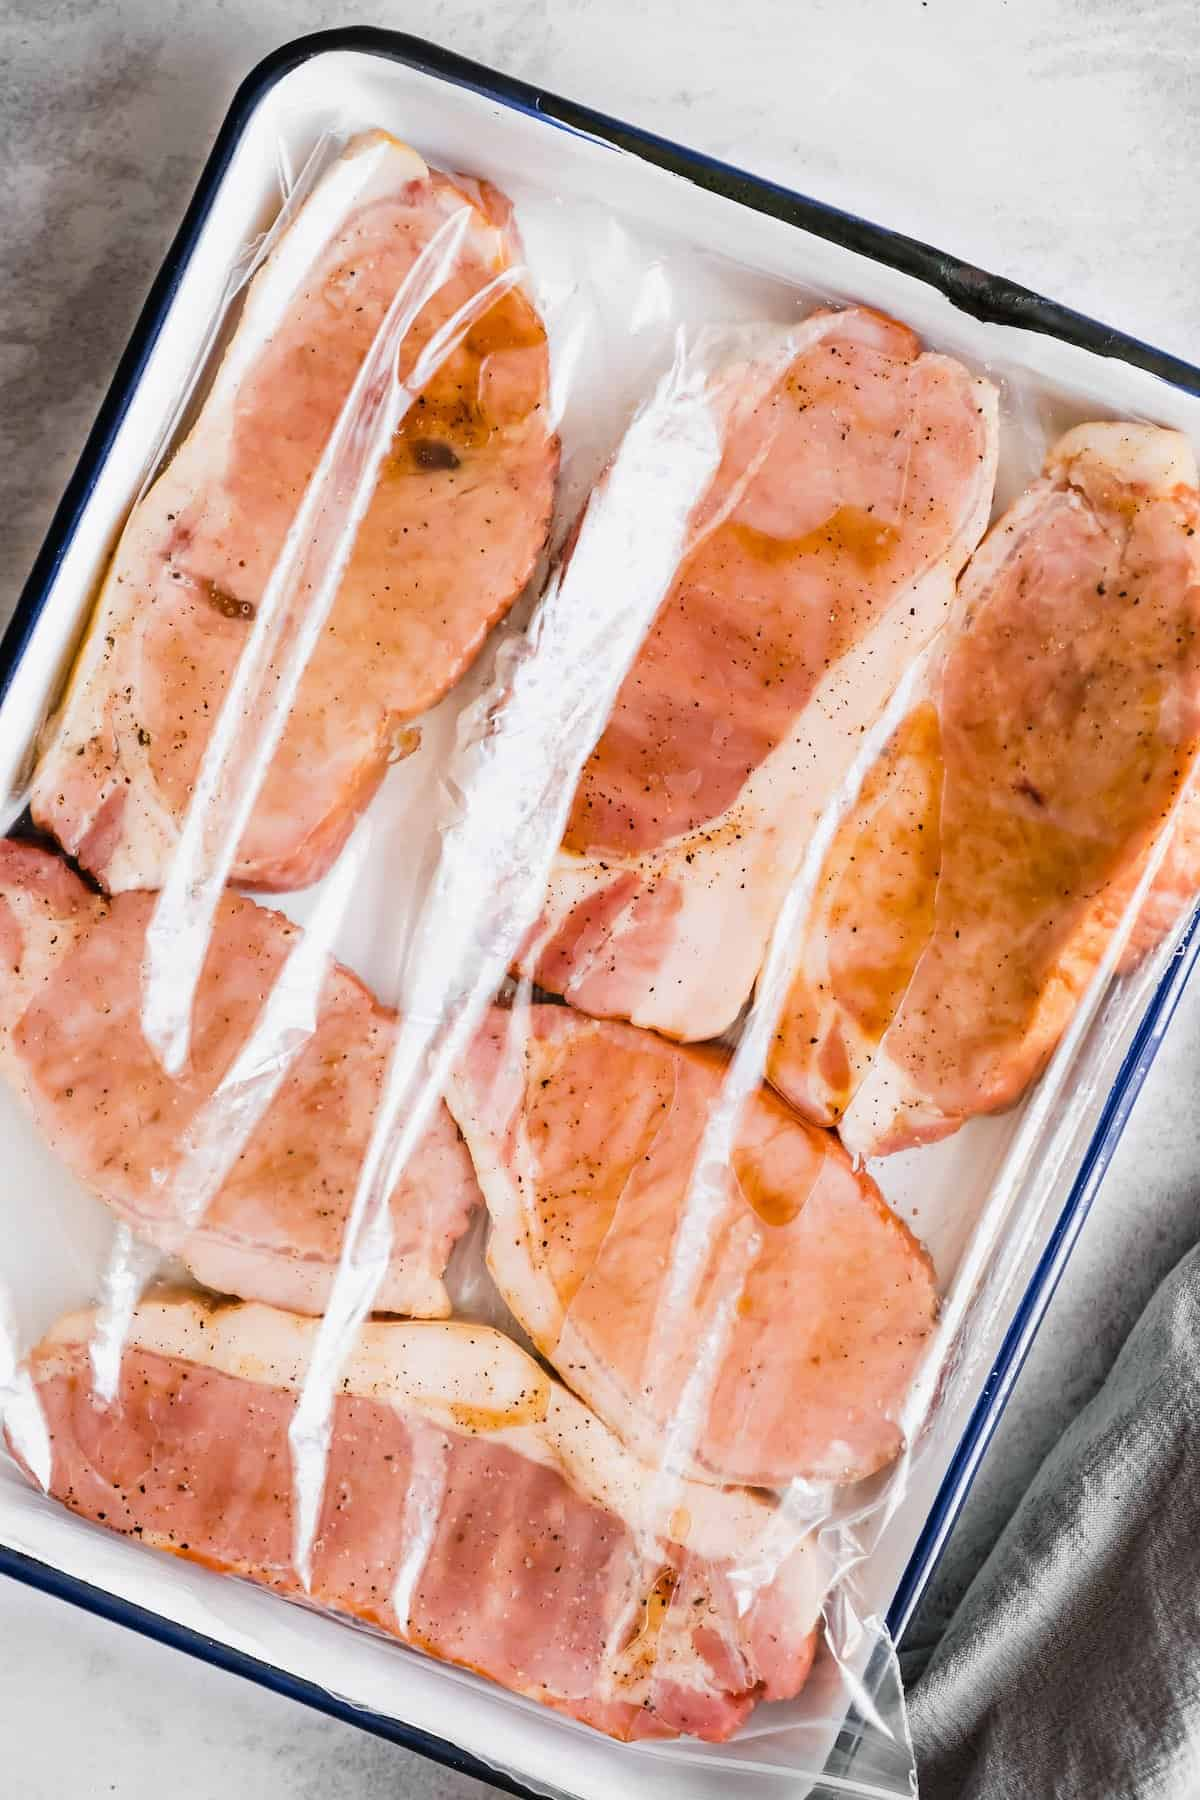 6 pork chops on a tray with marinade.